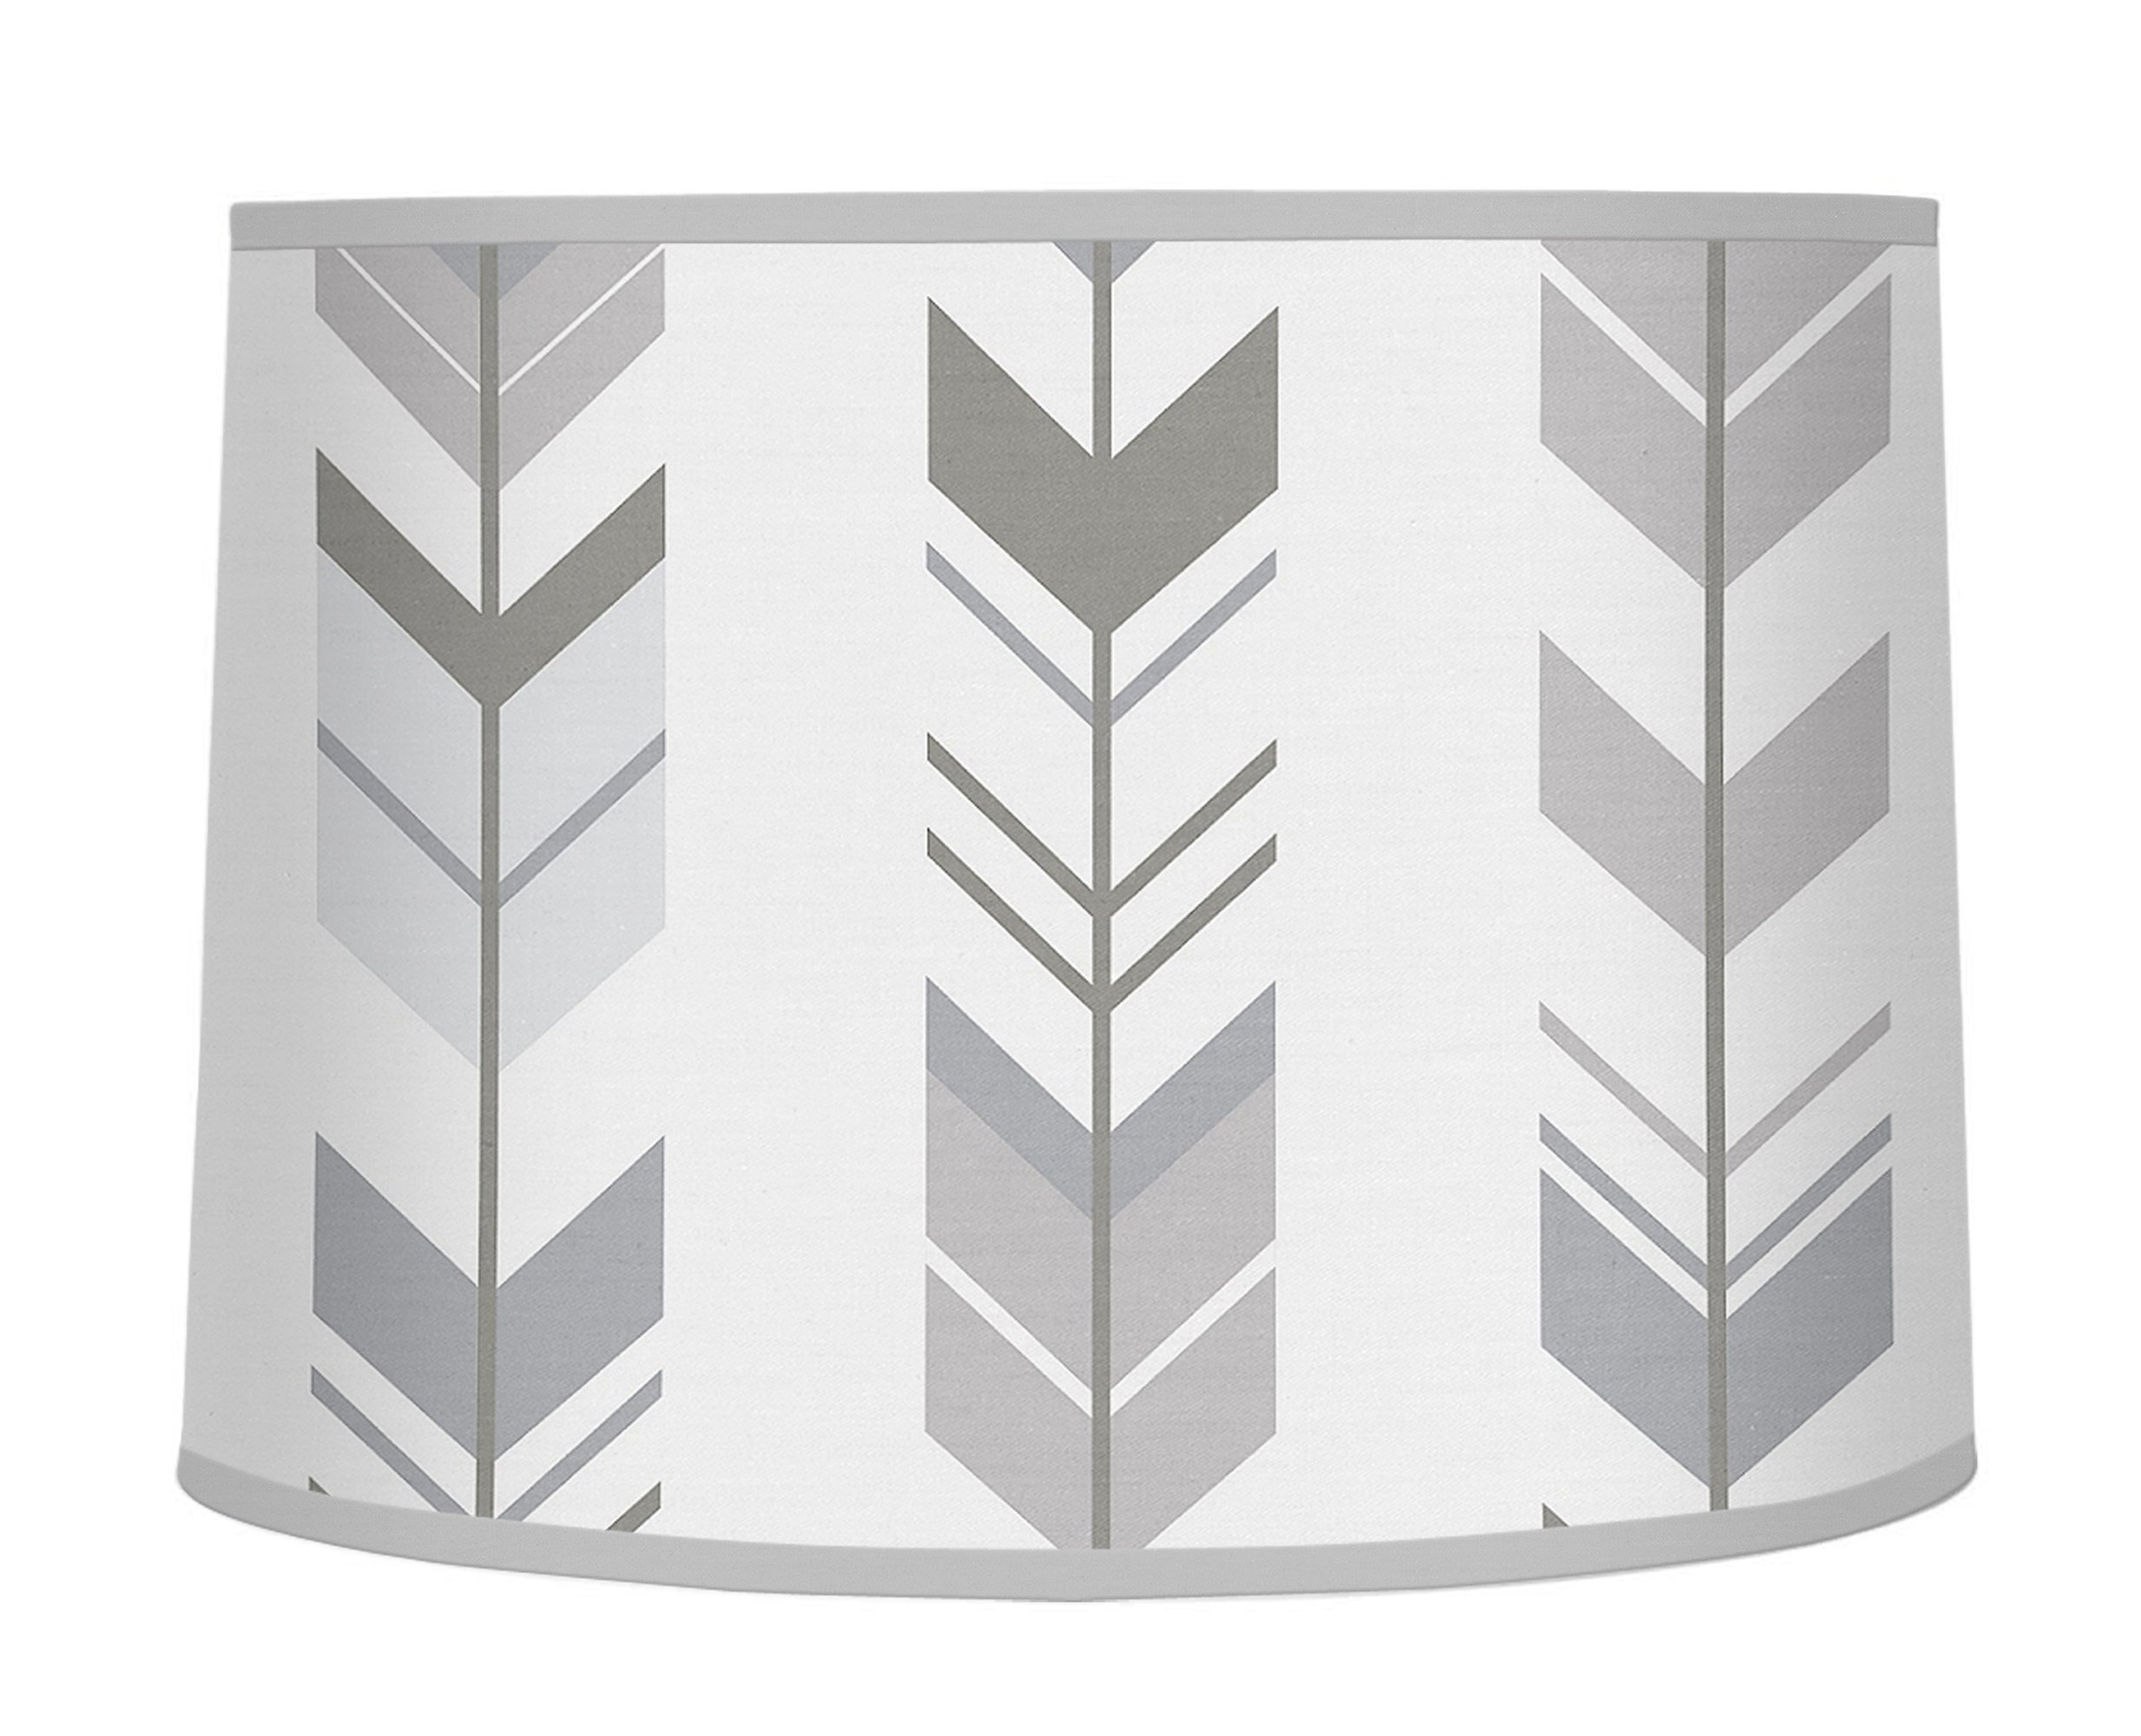 Sweet Jojo Designs Grey and White Lamp Shade for Woodland Arrow Collection by